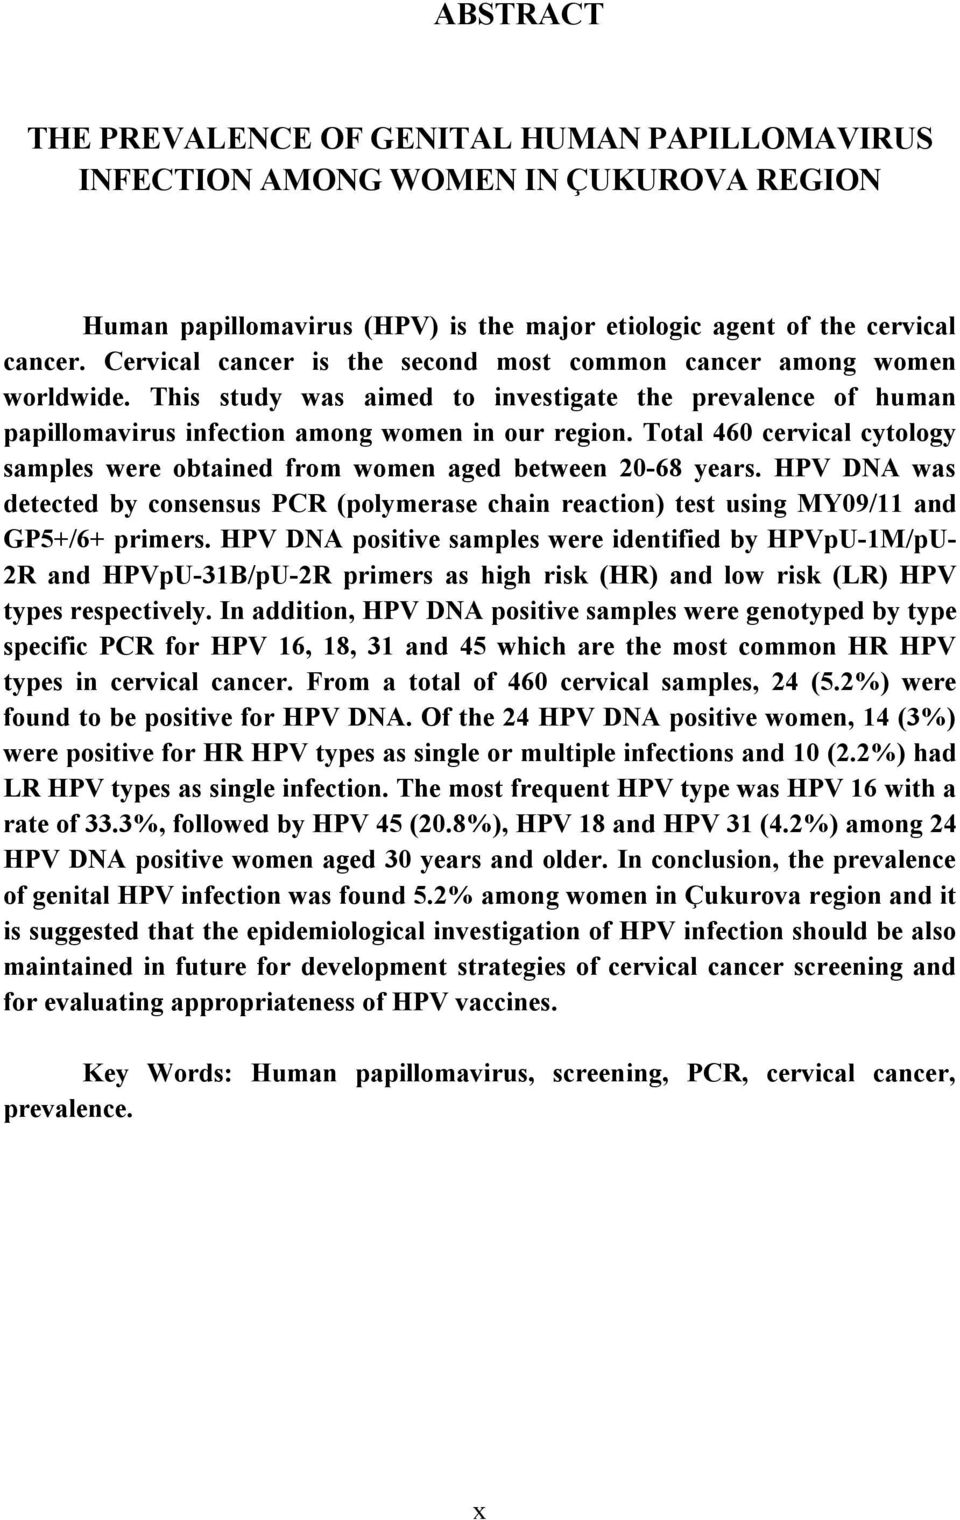 Total 460 cervical cytology samples were obtained from women aged between 20-68 years. HPV DNA was detected by consensus PCR (polymerase chain reaction) test using MY09/11 and GP5+/6+ primers.